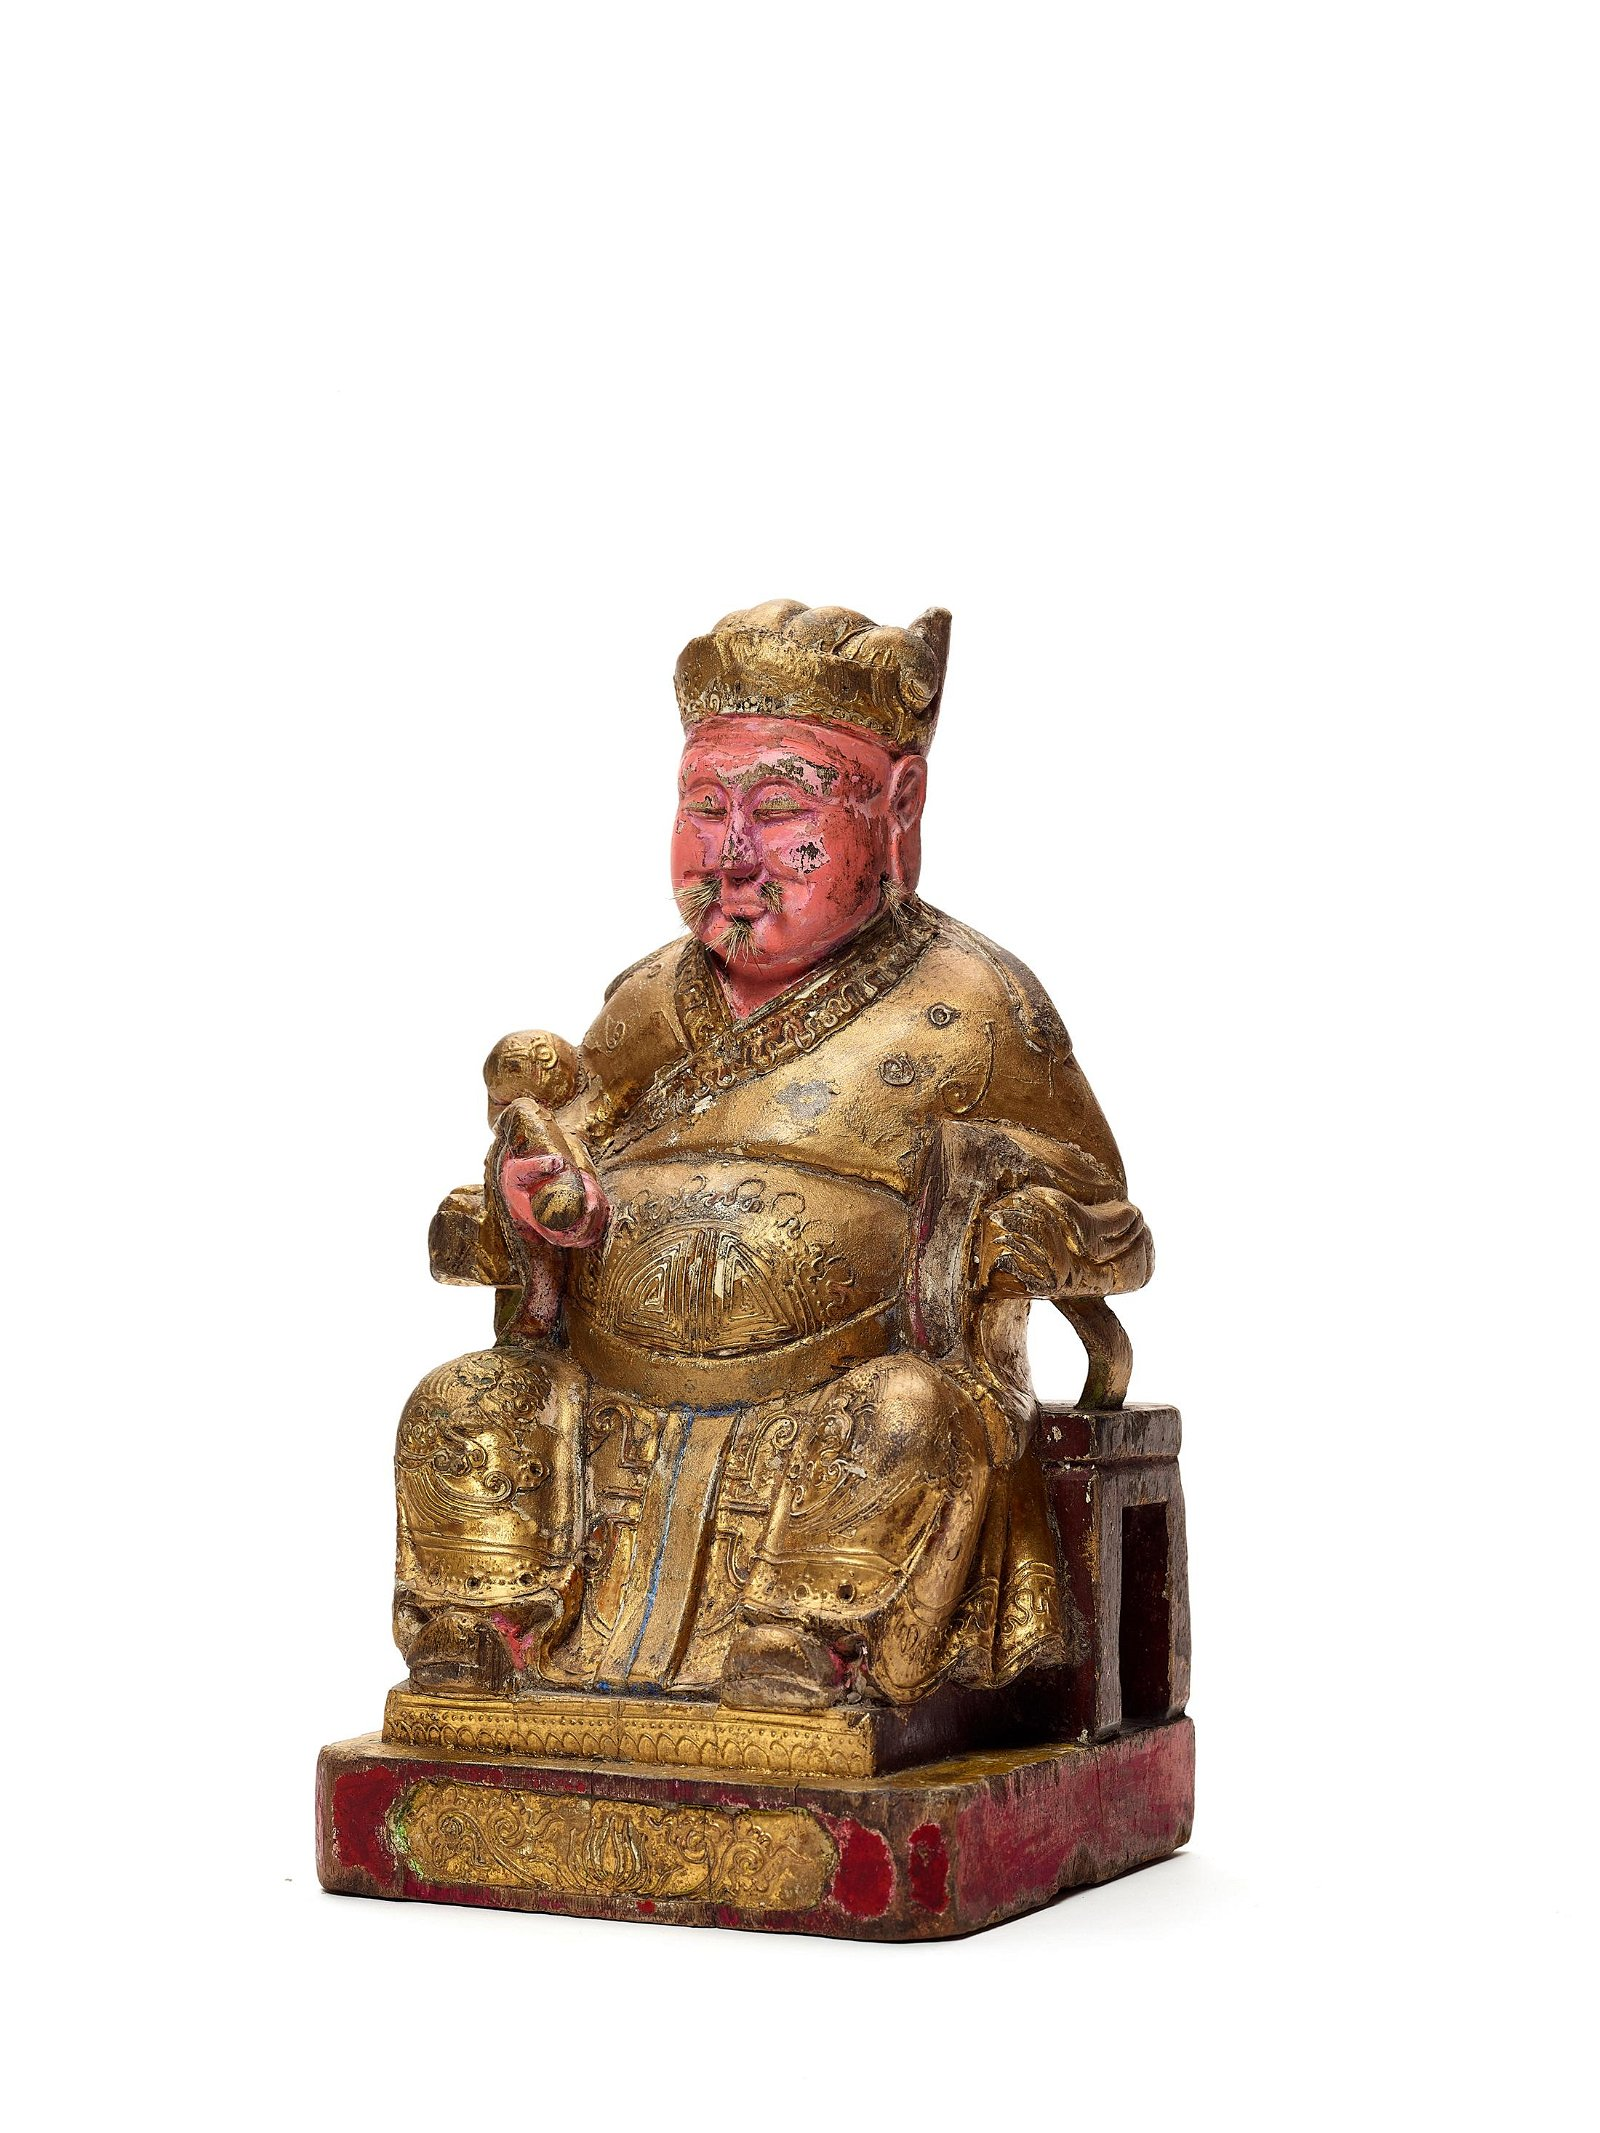 A LACQUERED AND GILT WOOD FIGURE GUANDI, 17-18c.